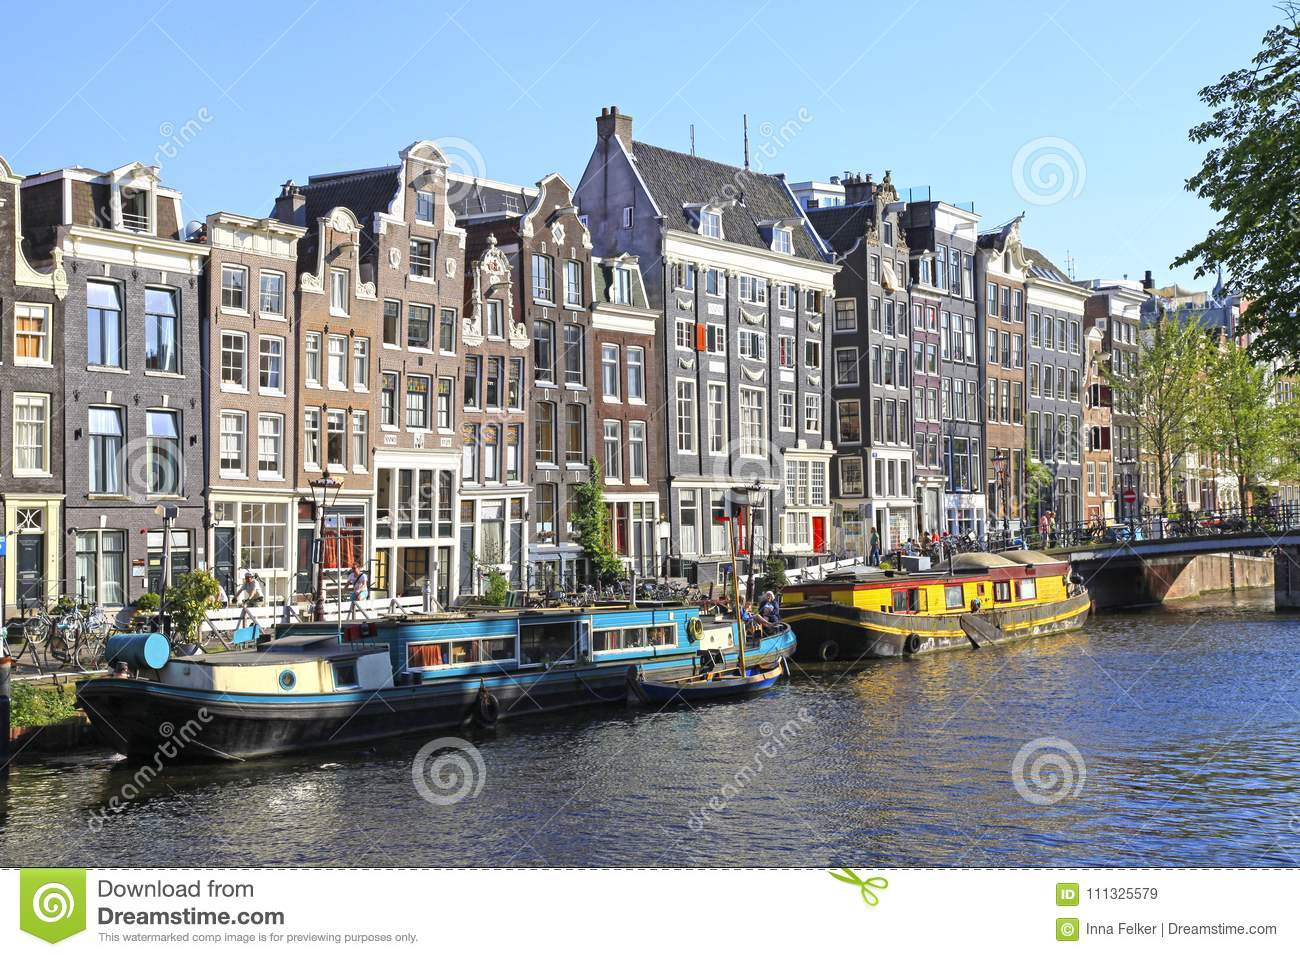 Old houses of traditional architecture and ship along canal,Amsterdam,Netherlands.